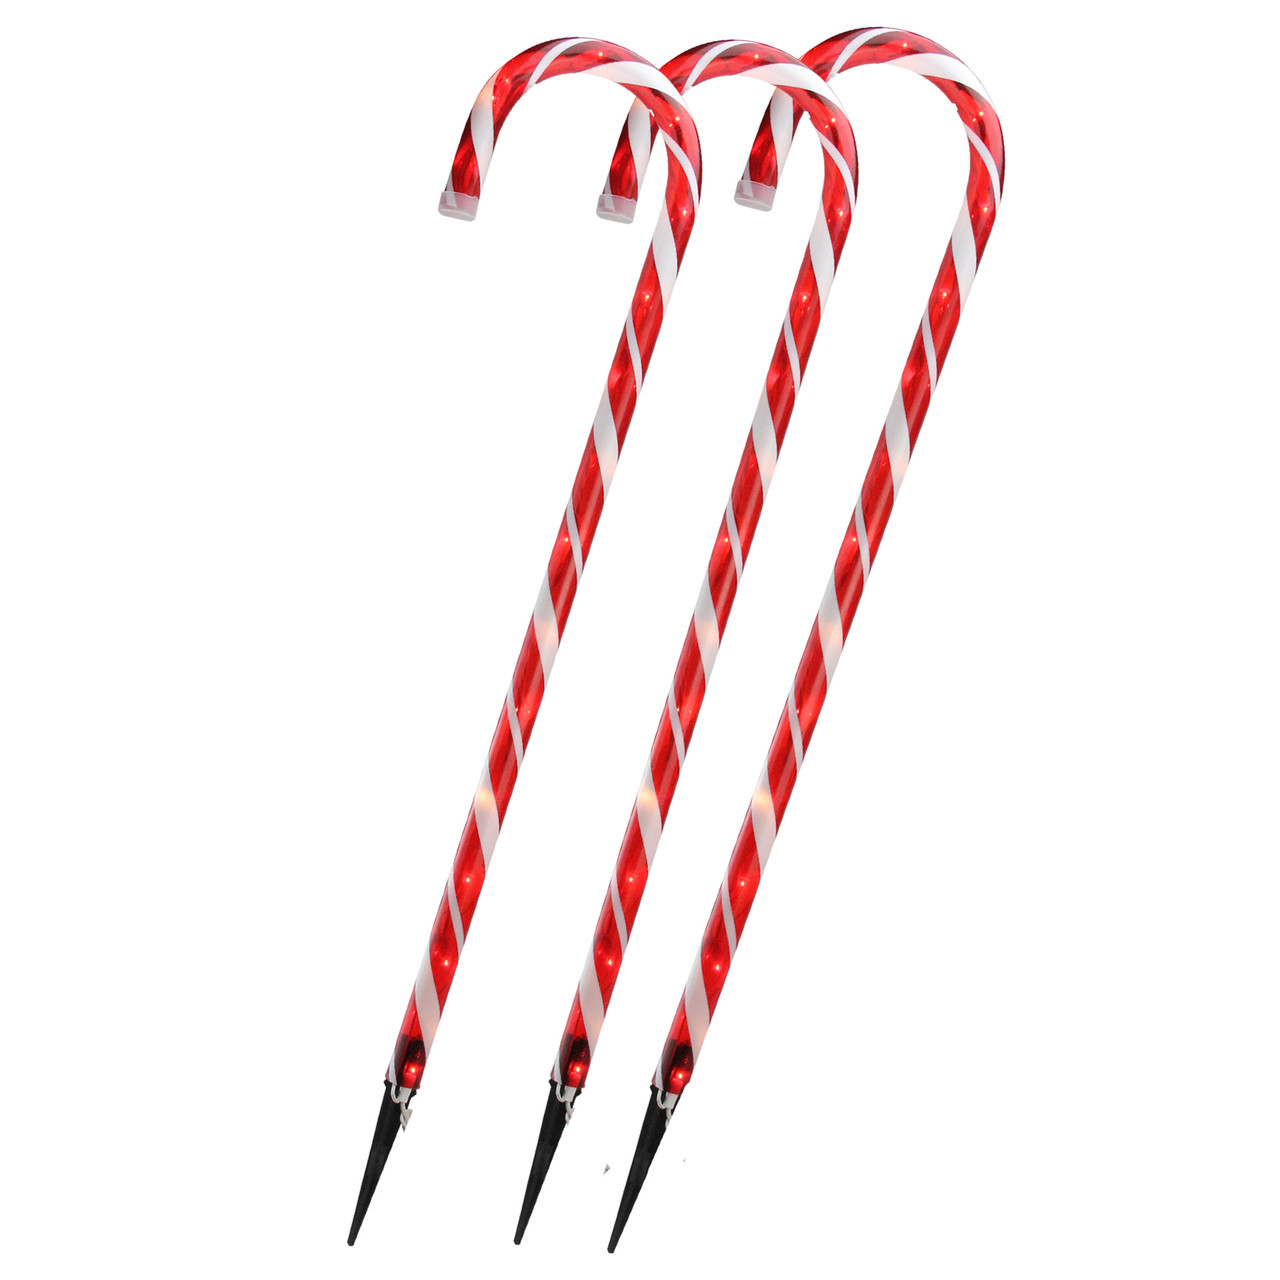 Set of 3 lighted candy cane christmas outdoor decorations 28 set of 3 lighted candy cane christmas outdoor decorations 28 32622998 workwithnaturefo